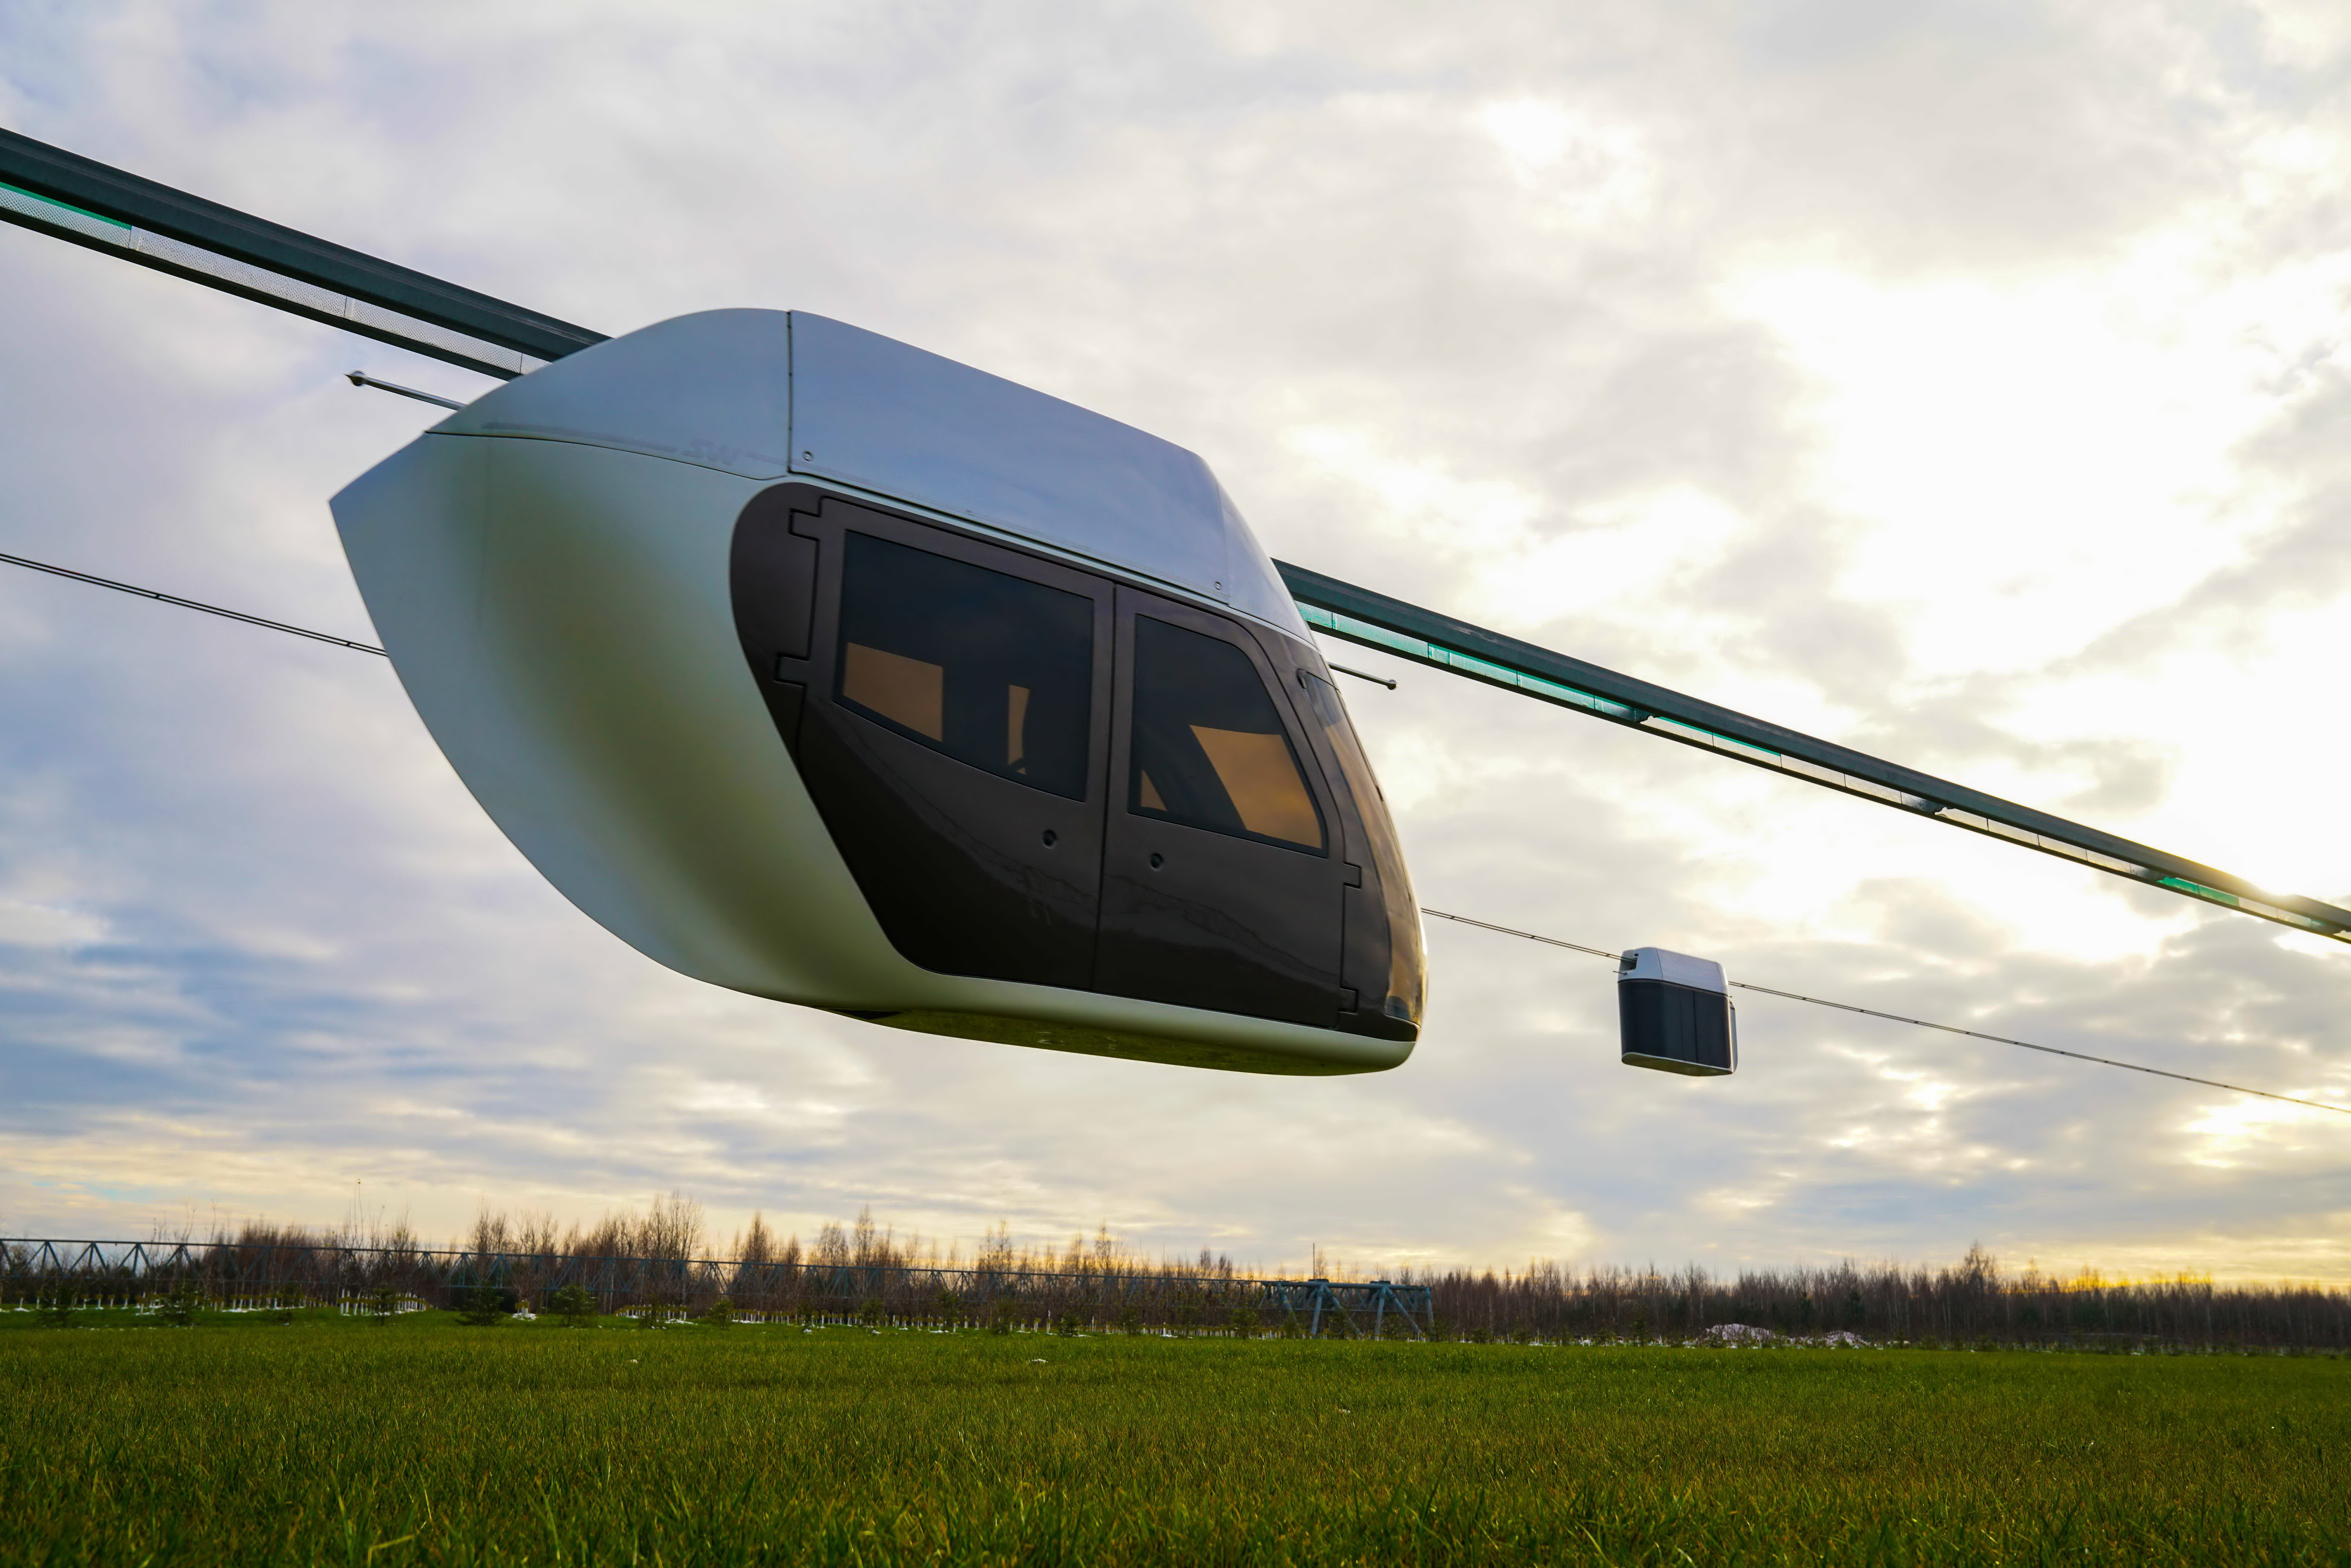 "Industry 4.0 in ""SkyWay Technologies"": Development of New Models in SkyWay Transport Will Come up Faster and Better"